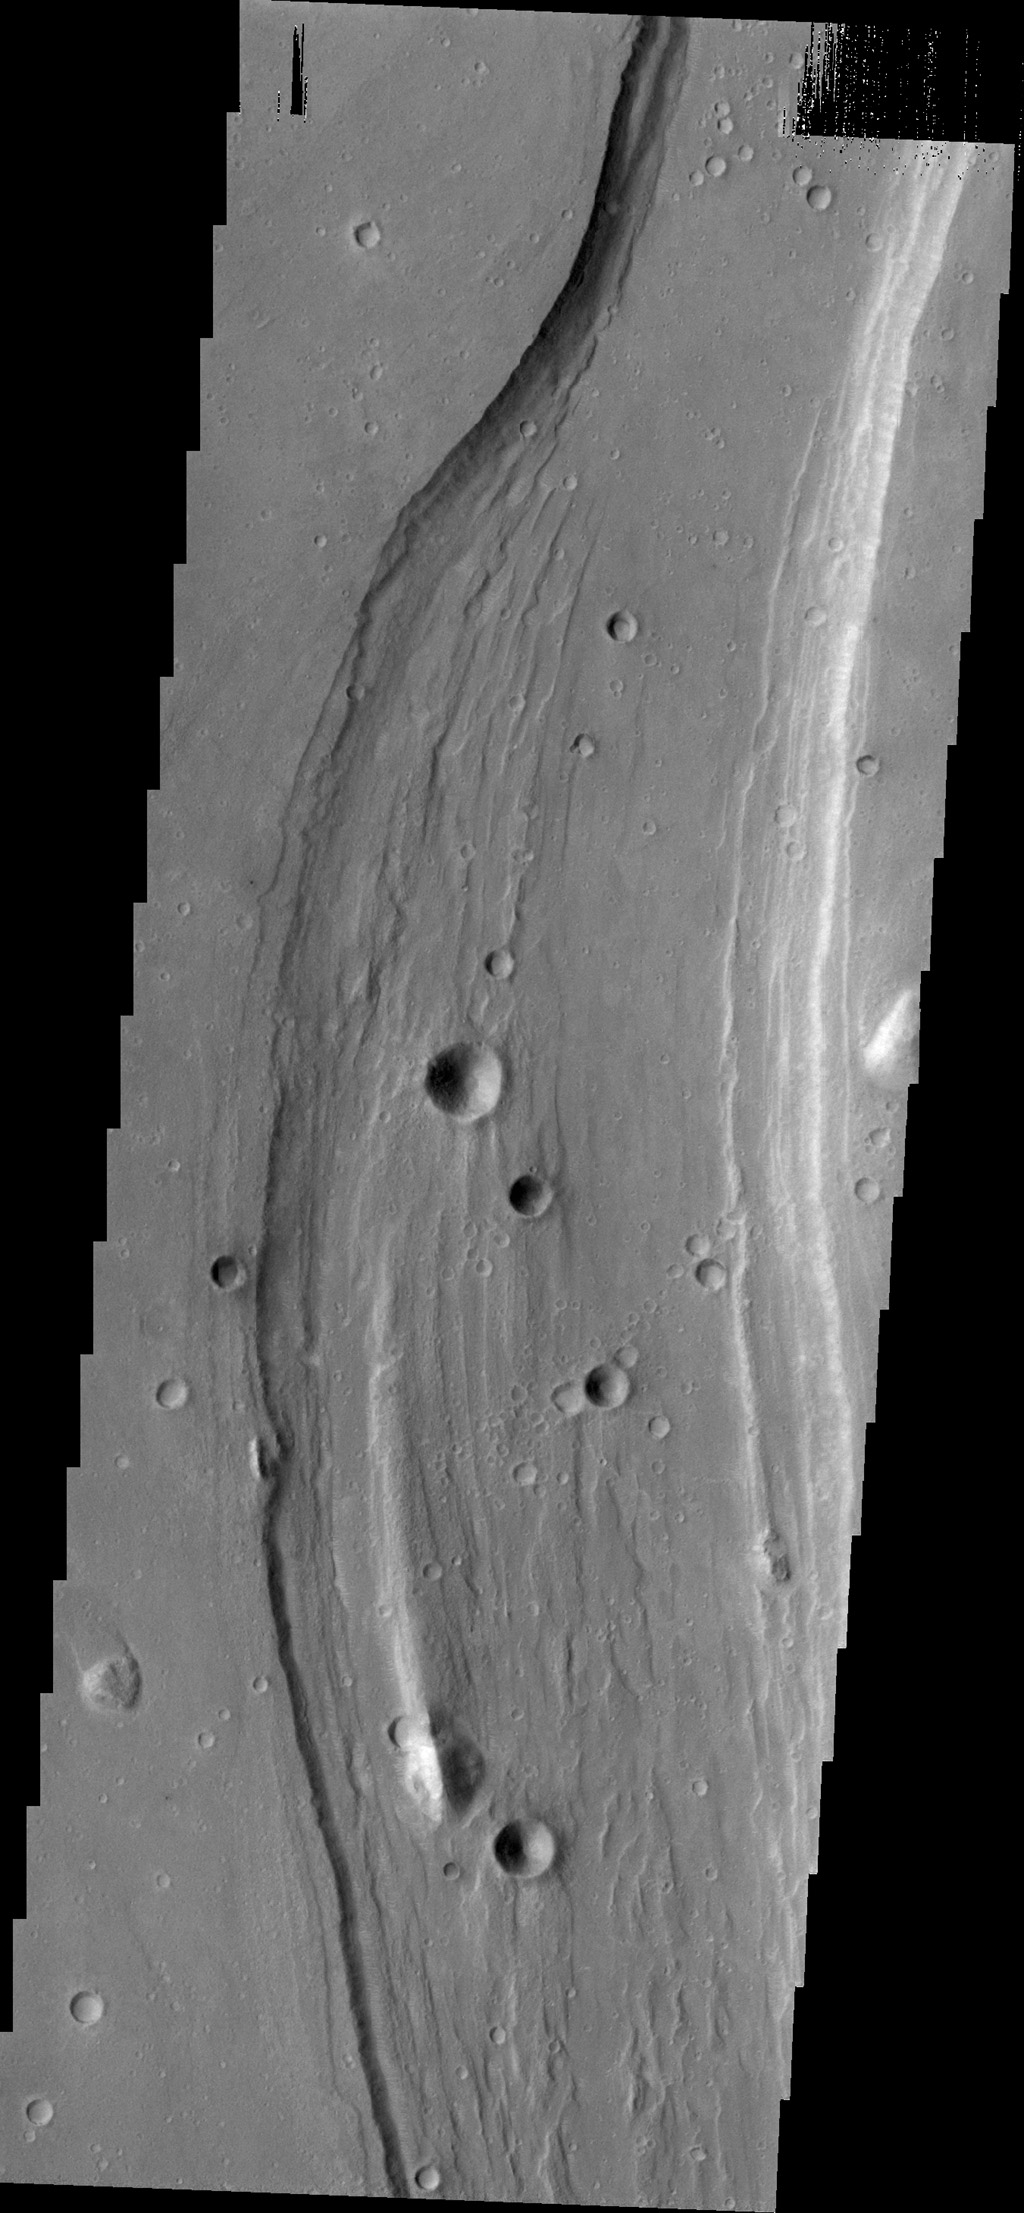 Shalbatana Vallis dominates this image captured by NASA's 2001 Mars Odyssey spacecraft.